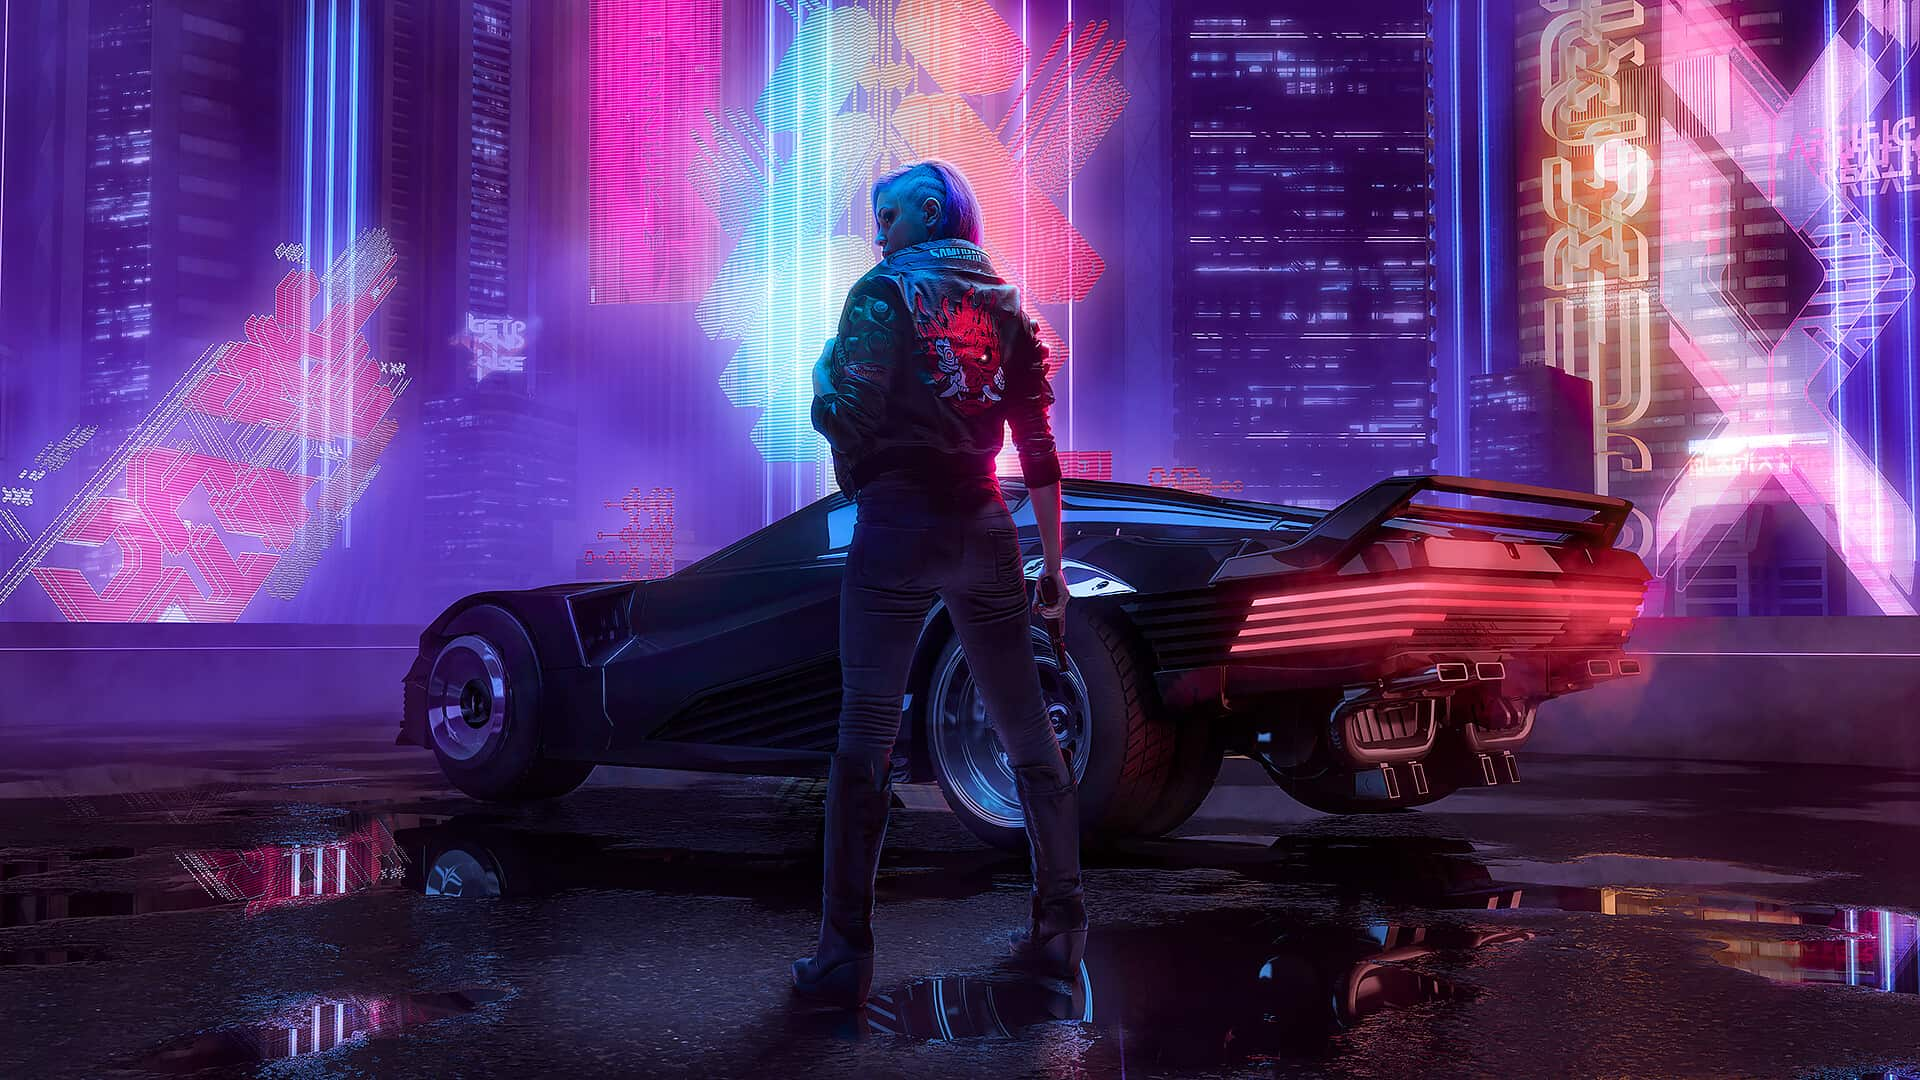 Cyberpunk 2077 Wallpapers Cyberpunk 2077 Screenshots Pictures 1920x1080